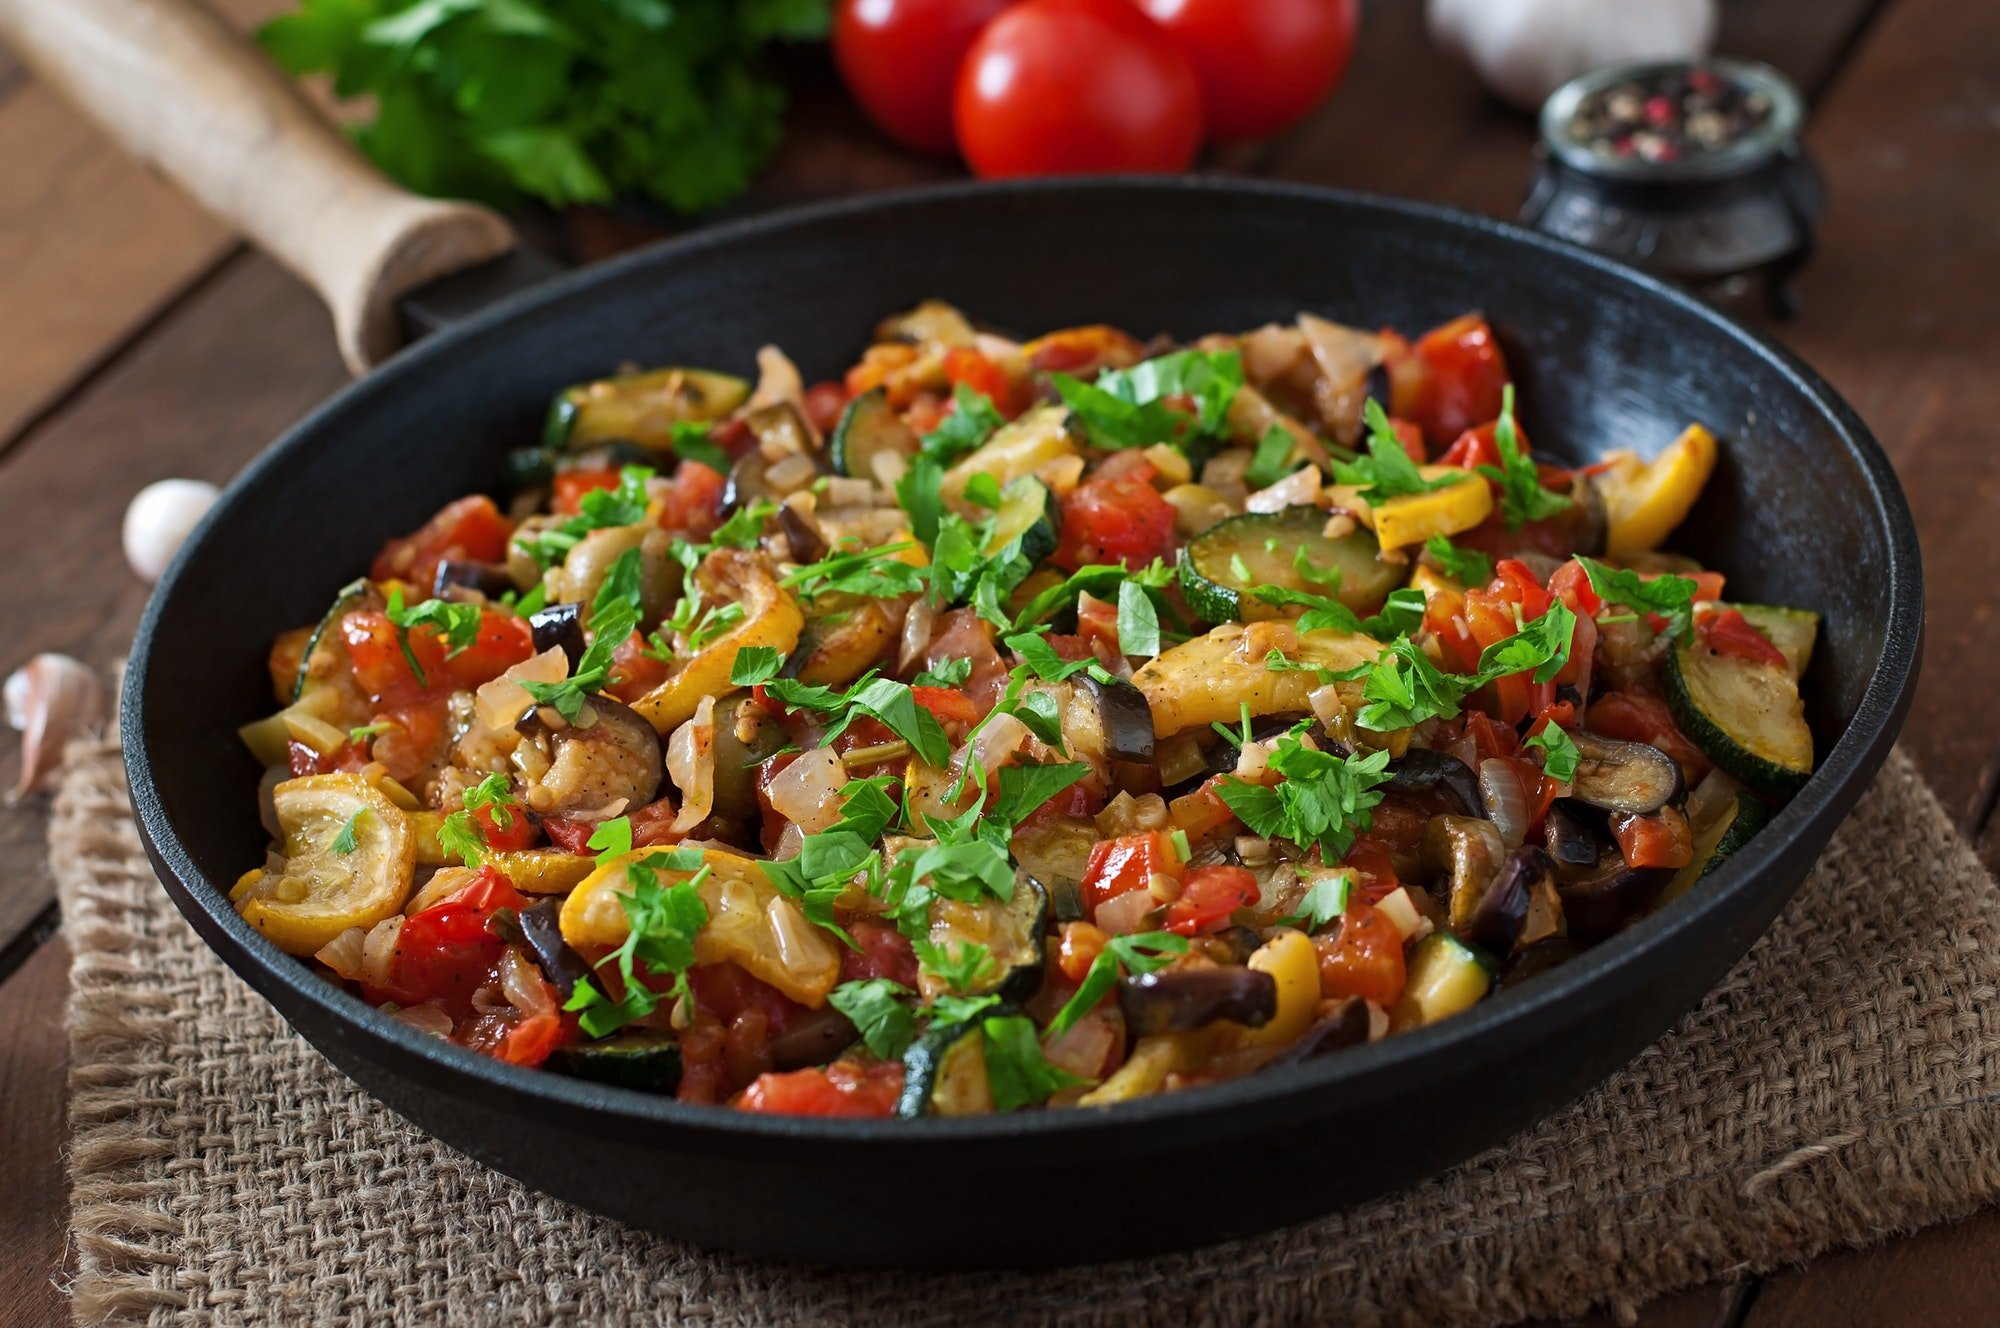 Vegetable Ratatouille in frying pan on a wooden table.